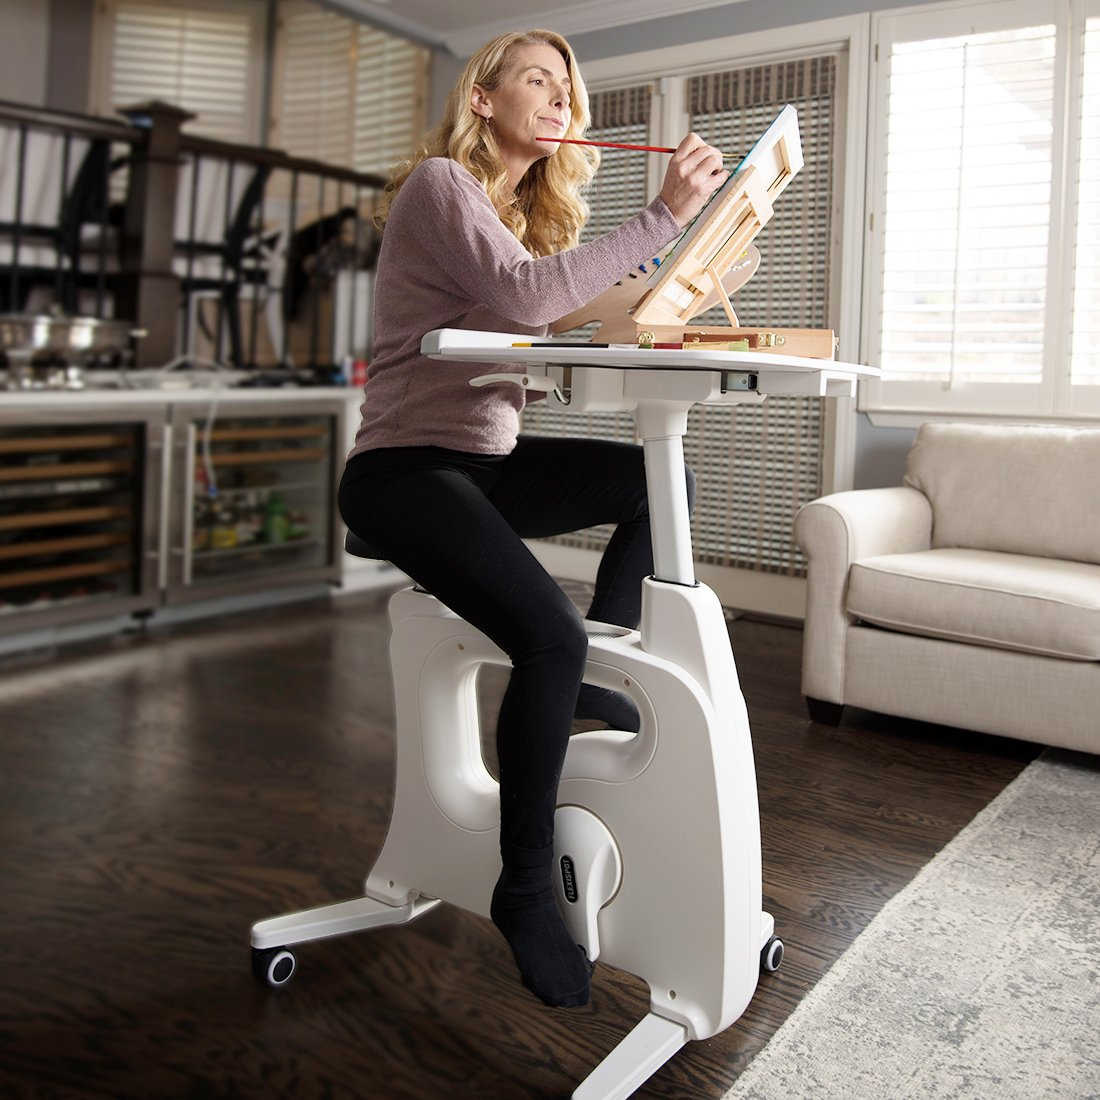 FLEXISPOT Desk Exercise Bike Home Office Standing Desk Cycle, Deskcise Pro – White